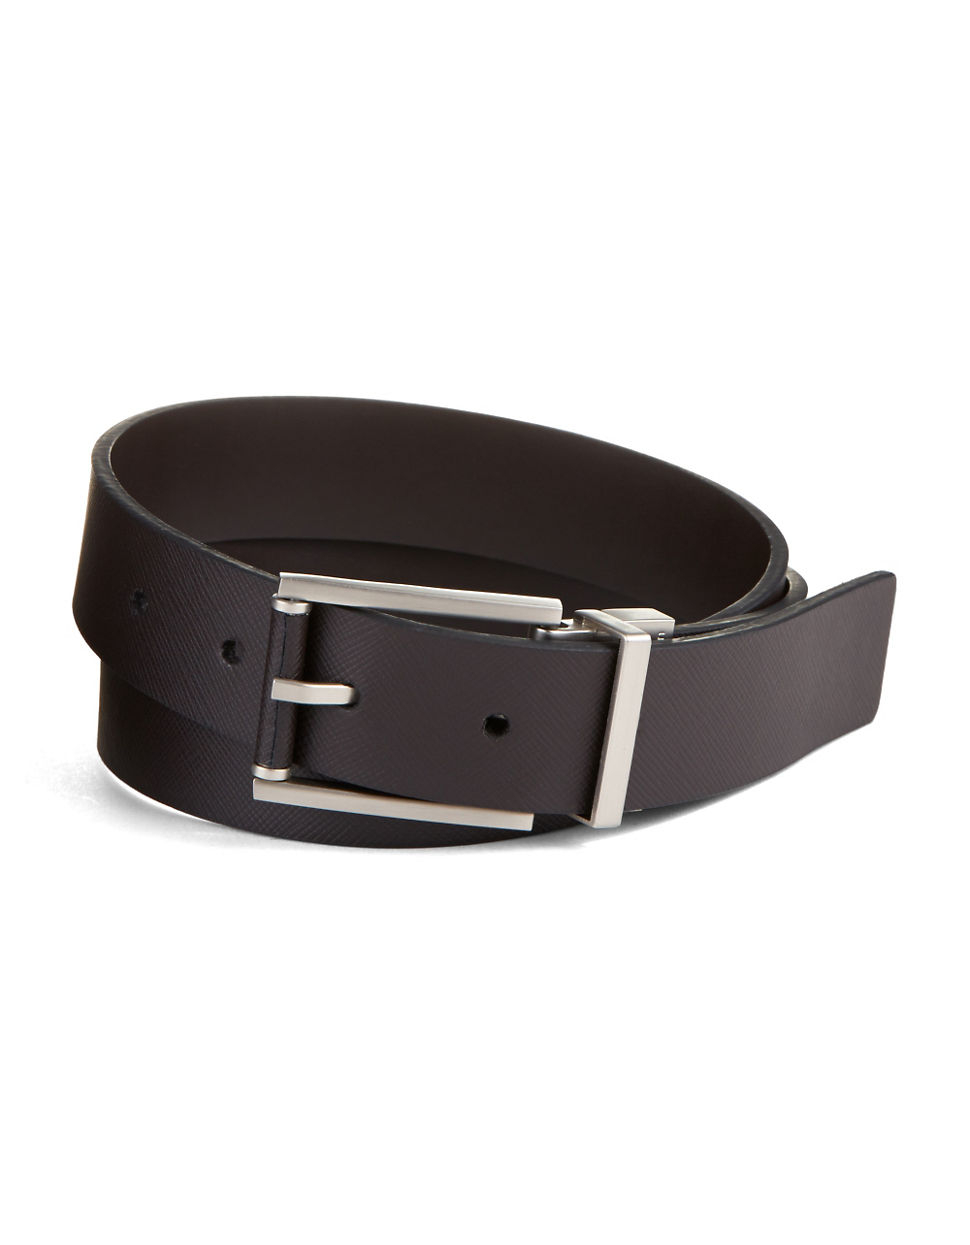 calvin klein reversible saffiano leather belt in brown for